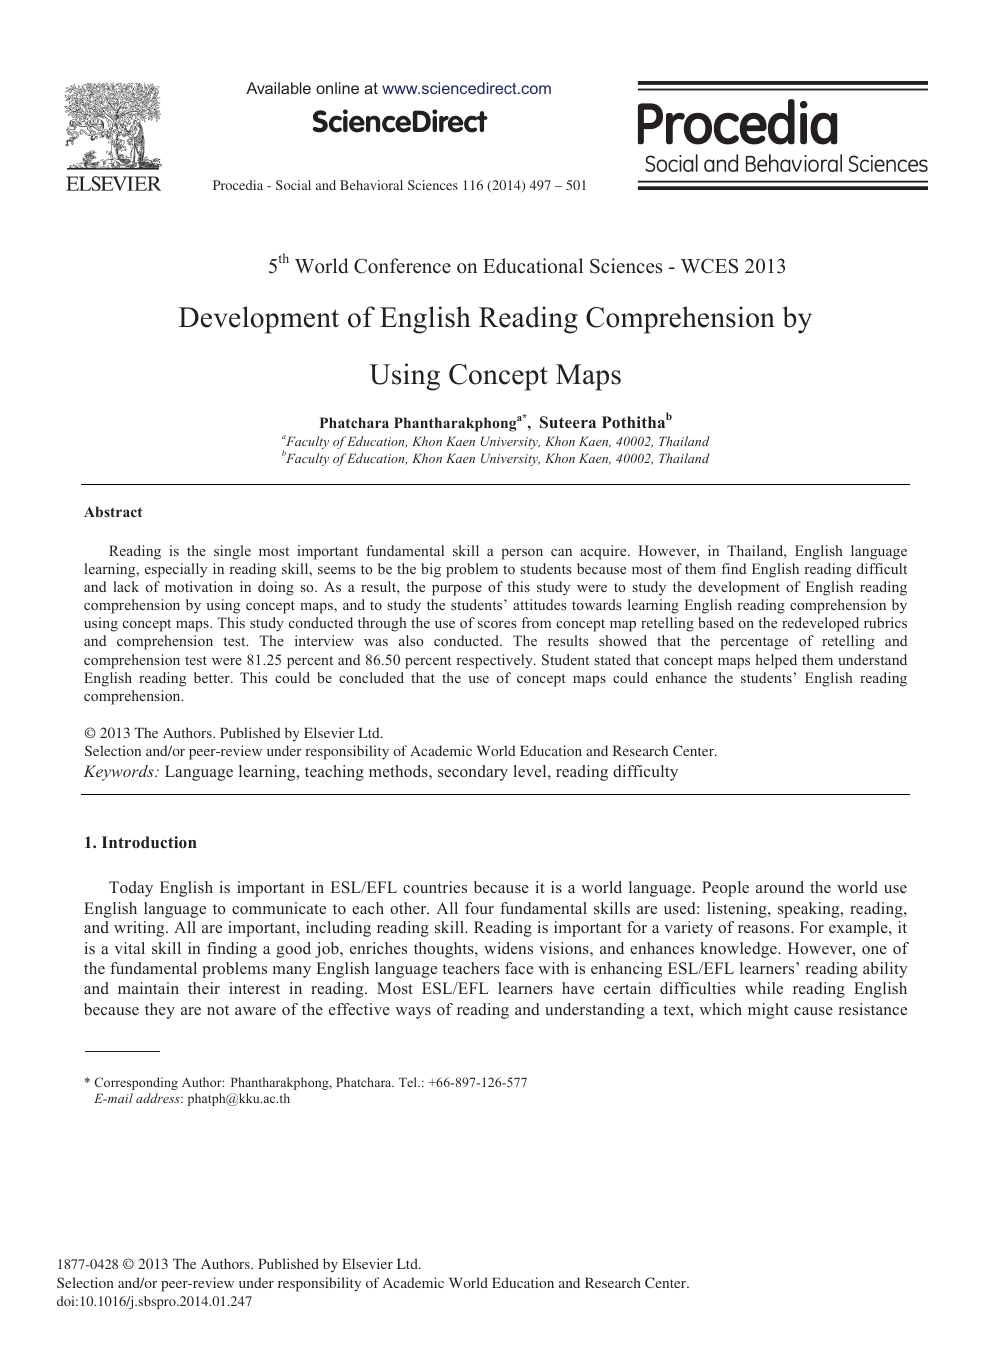 - Development Of English Reading Comprehension By Using Concept Maps